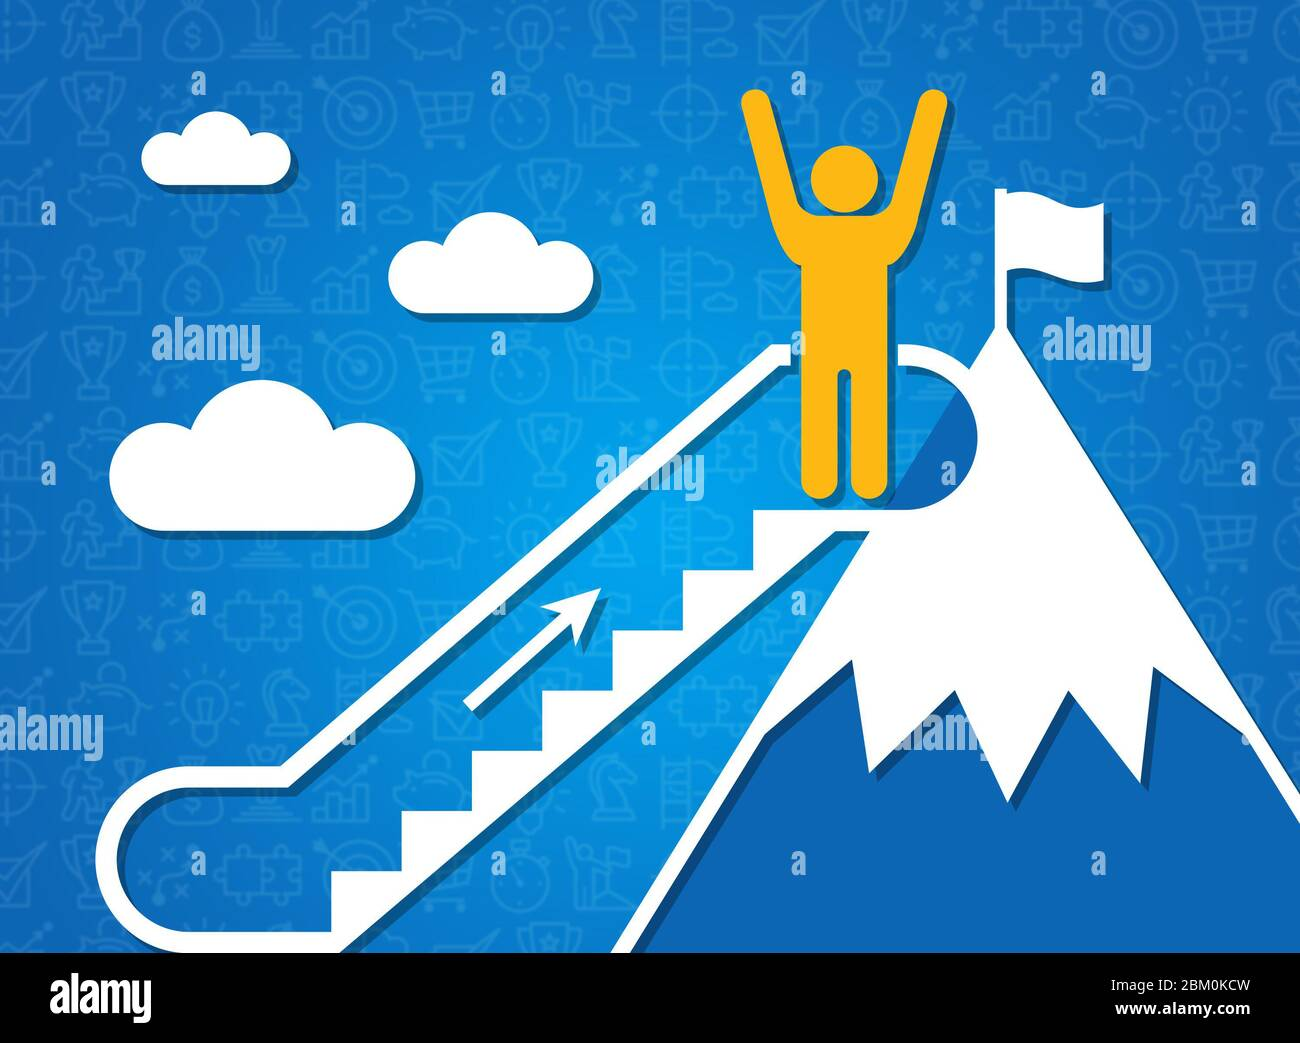 Following dreams and achieving success. Person on mountain top and moving staircase, blue background. Illustration Stock Photo